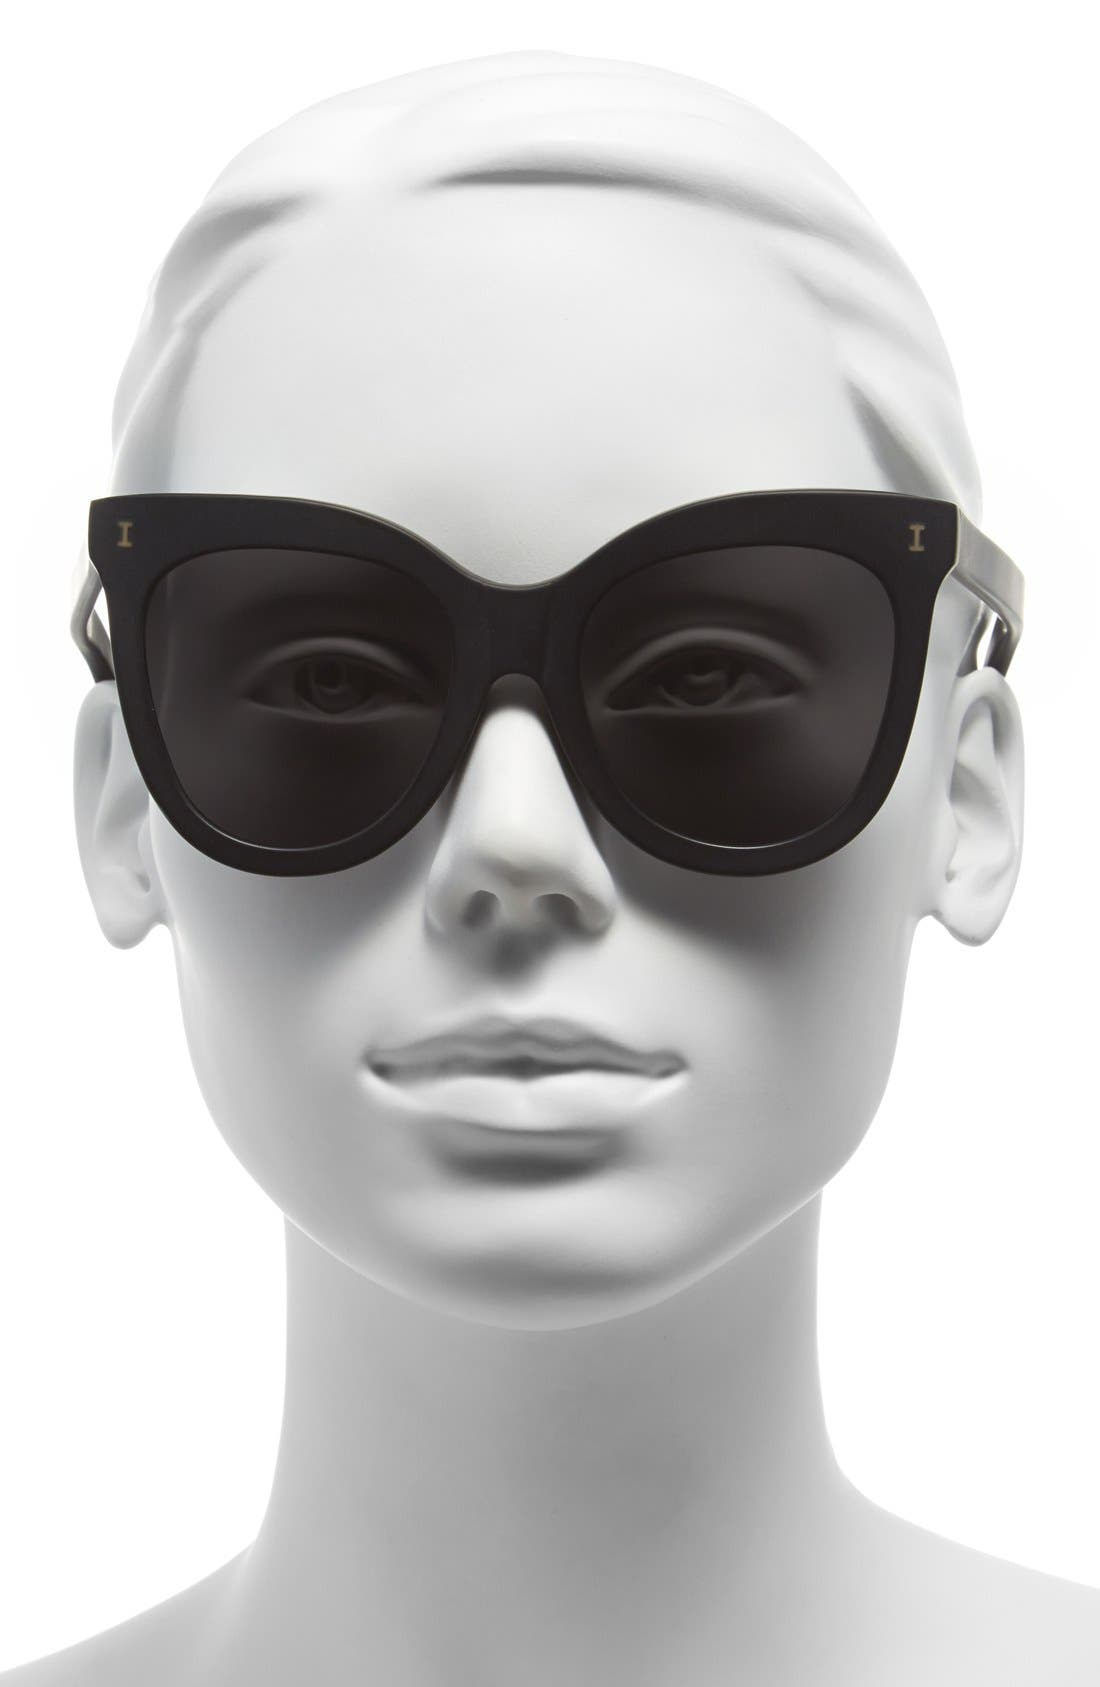 'Holly' 51mm Sunglasses,                             Alternate thumbnail 2, color,                             001